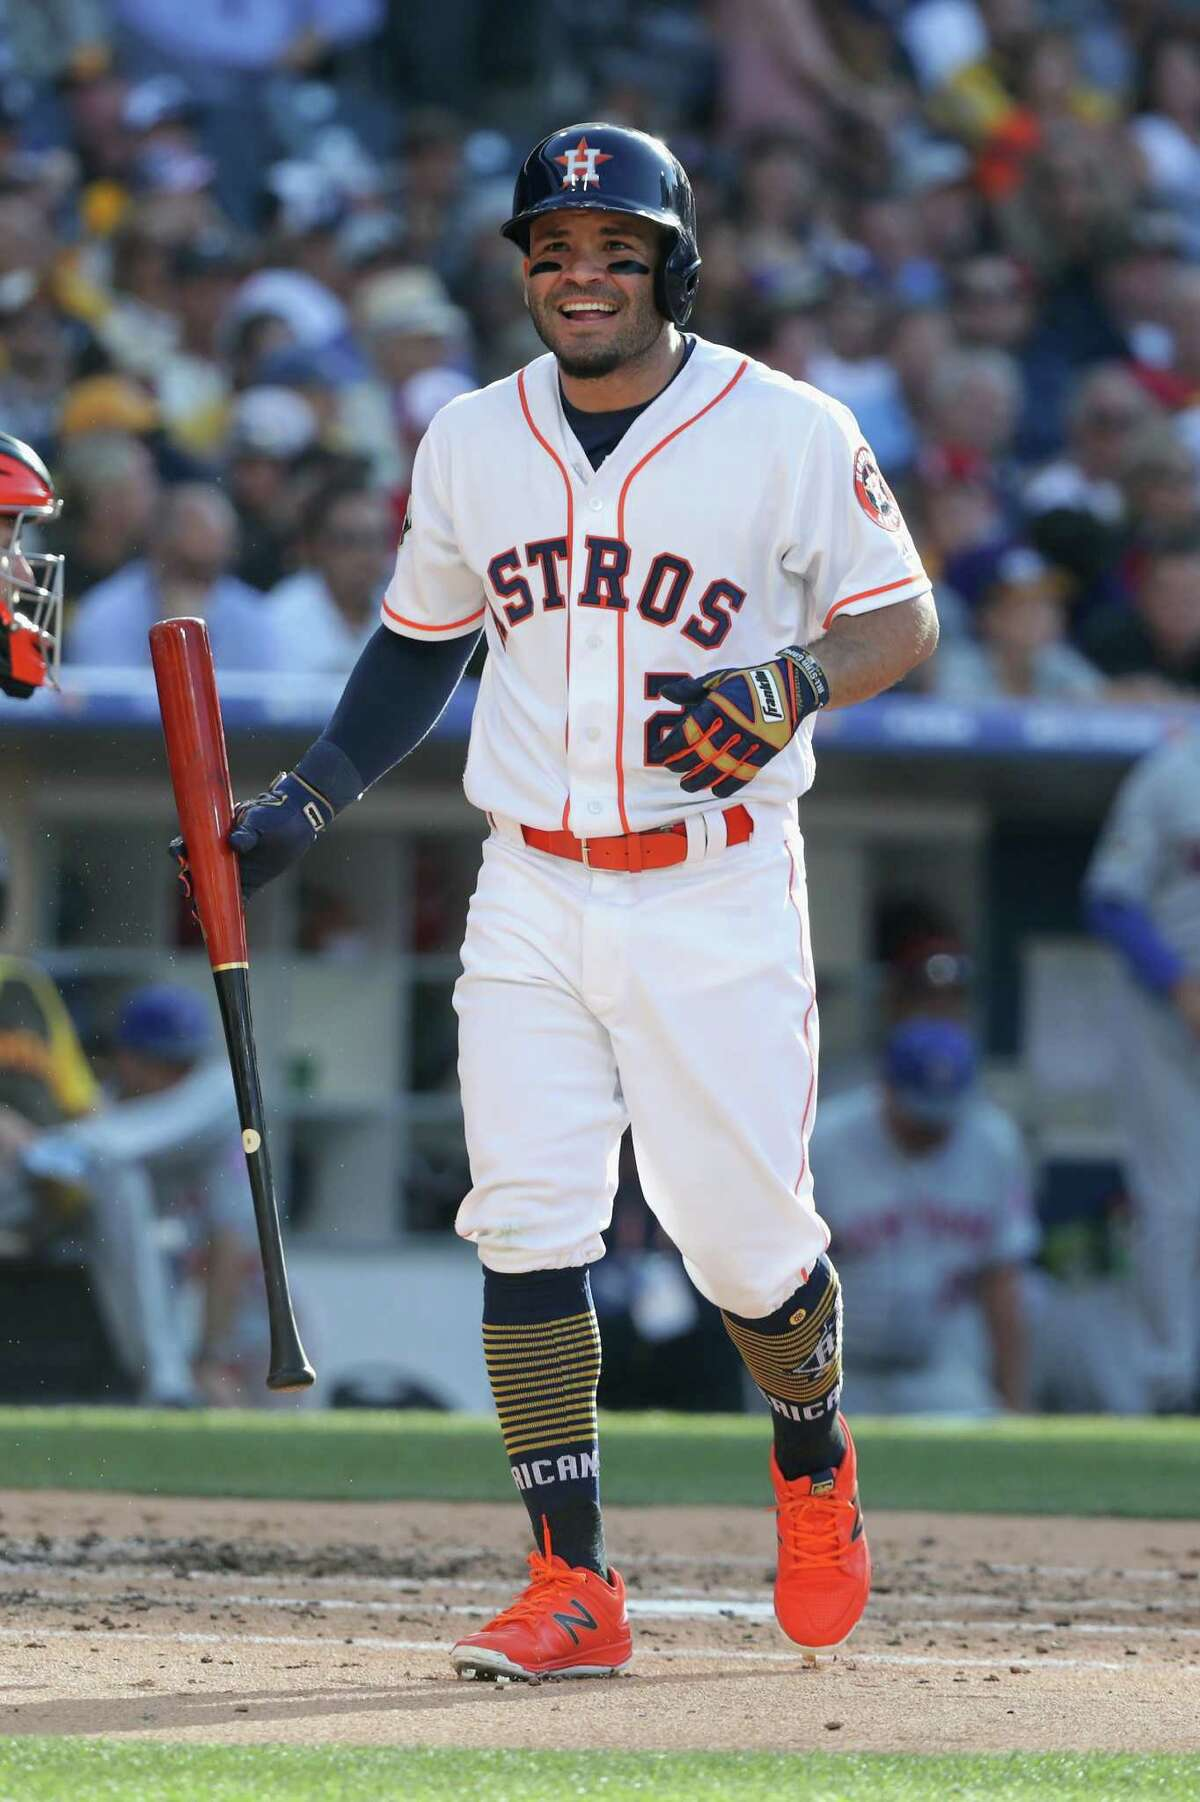 SAN DIEGO, CA - JULY 12: Jose Altuve #27 of the Houston Astros reacts during the 87th Annual MLB All-Star Game at PETCO Park on July 12, 2016 in San Diego, California.